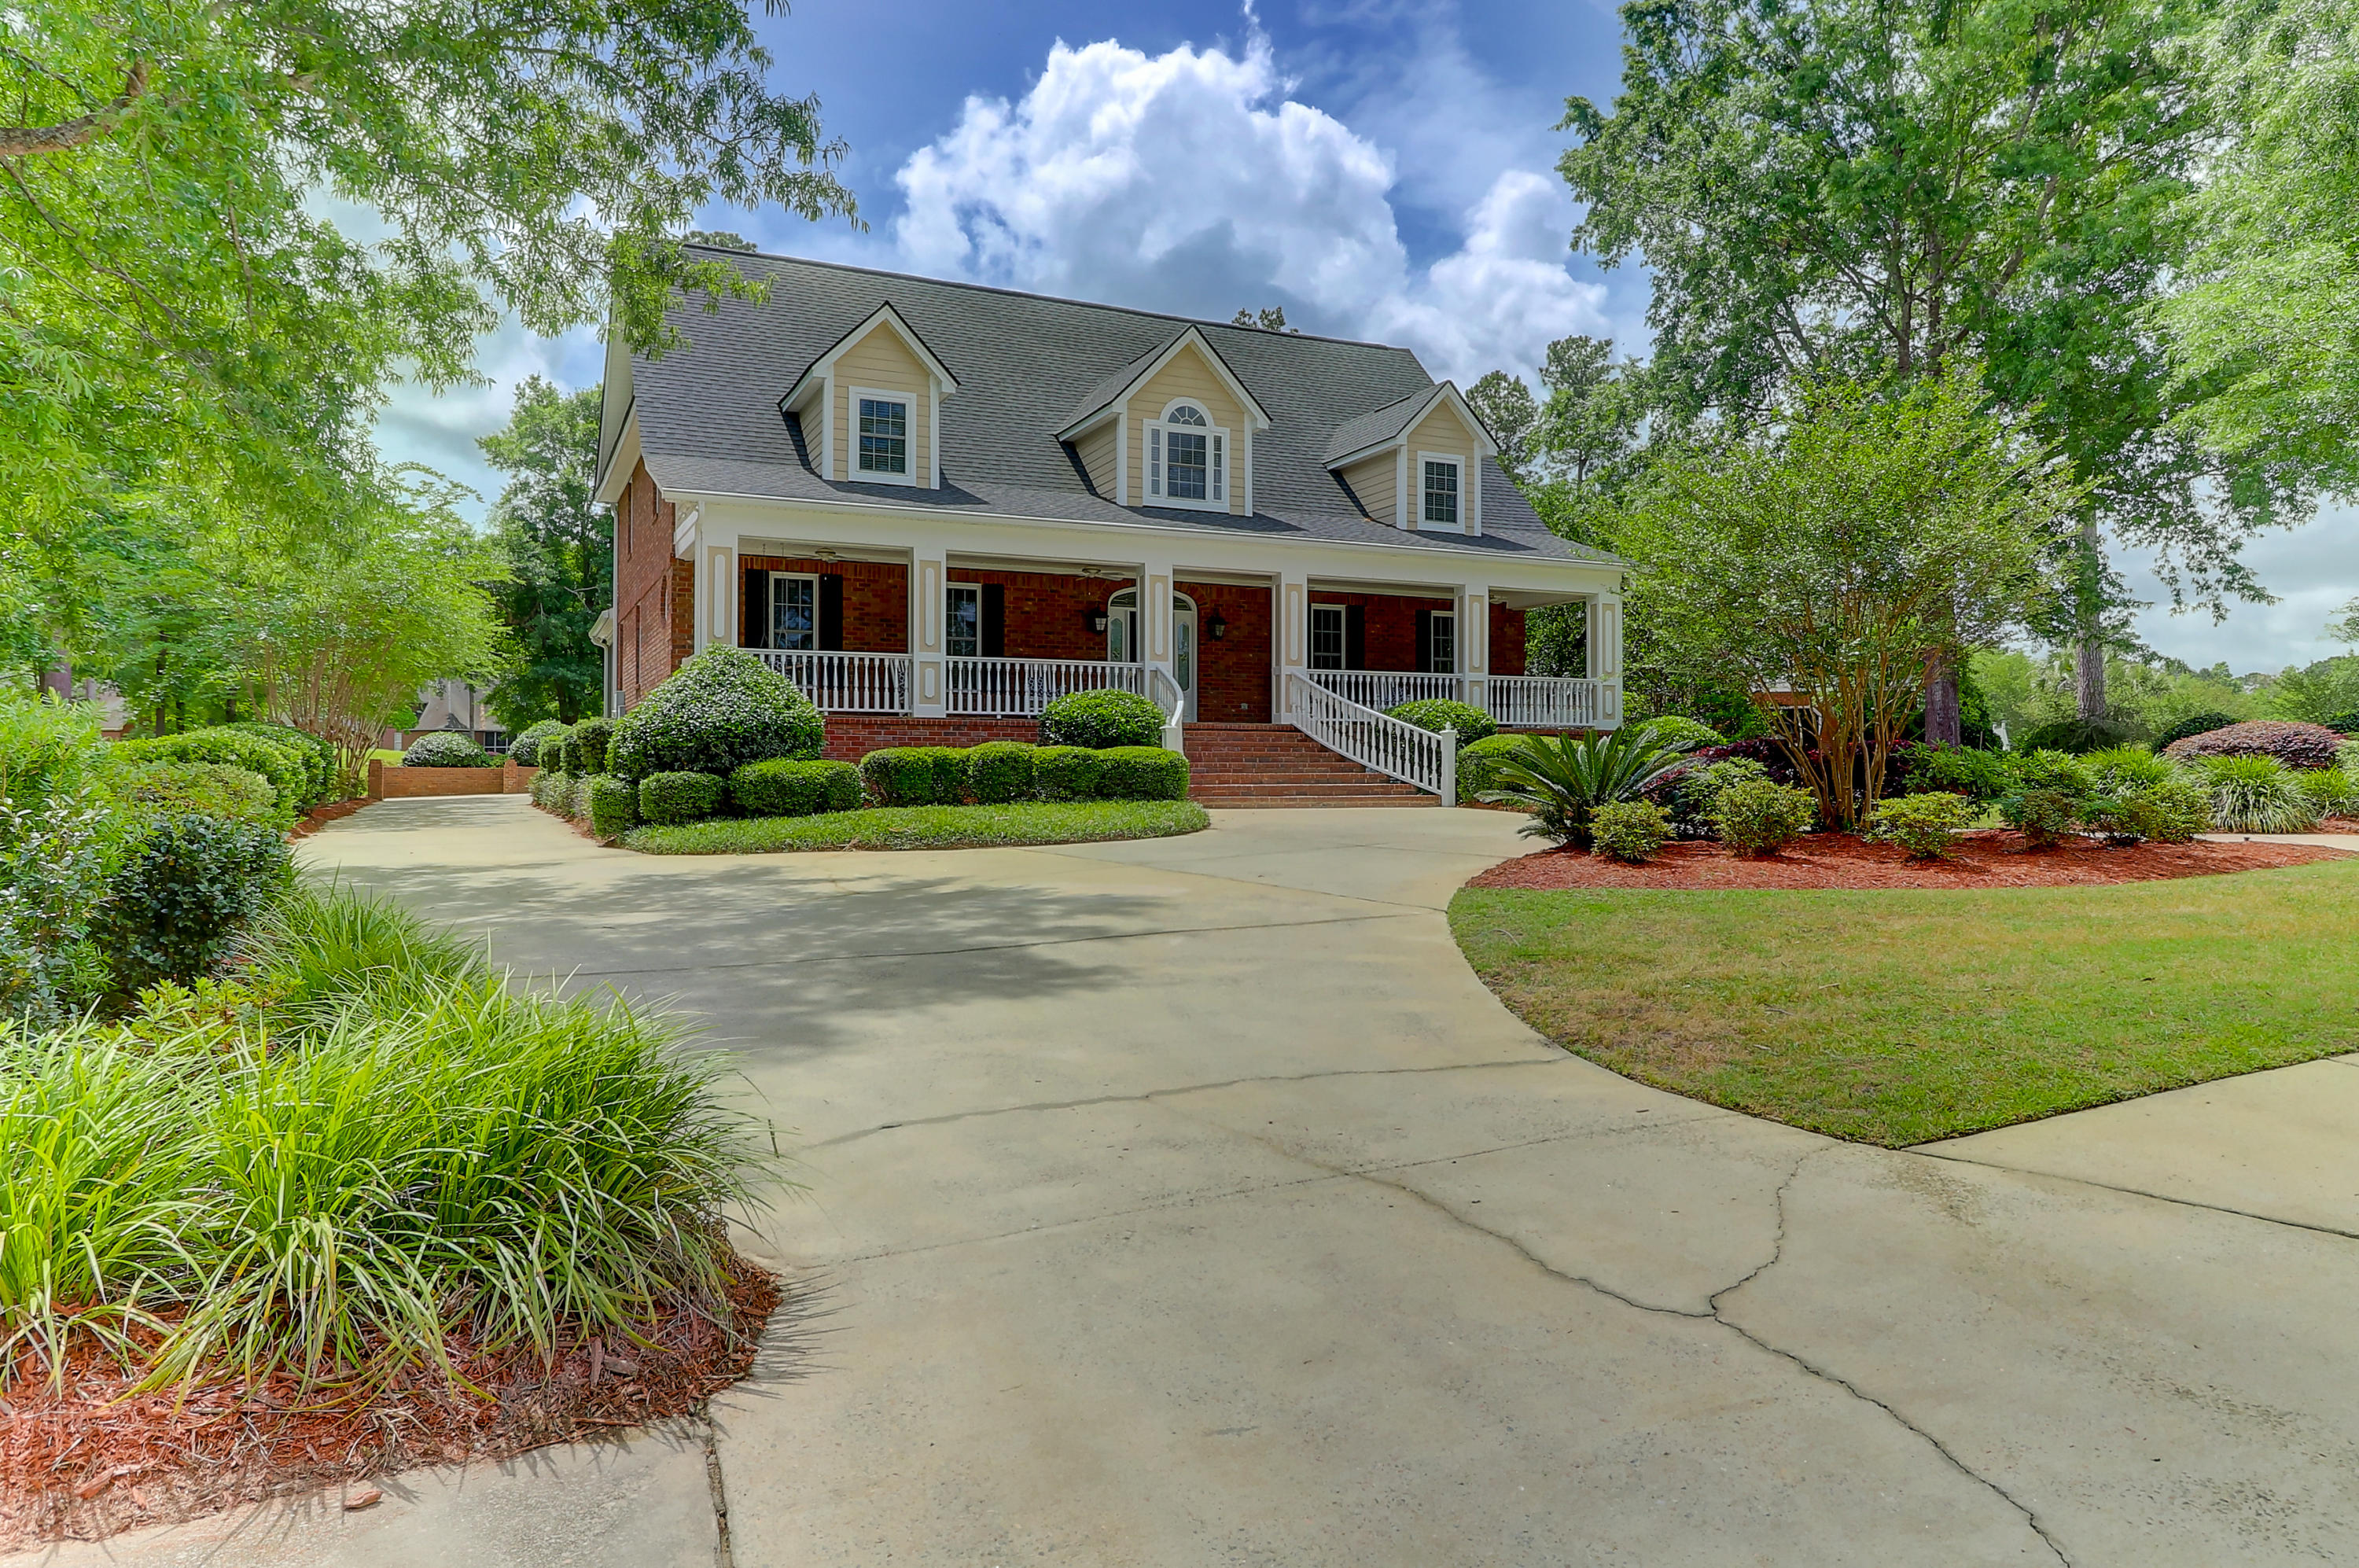 Coosaw Creek Country Club Homes For Sale - 8700 Fairway Woods, North Charleston, SC - 6